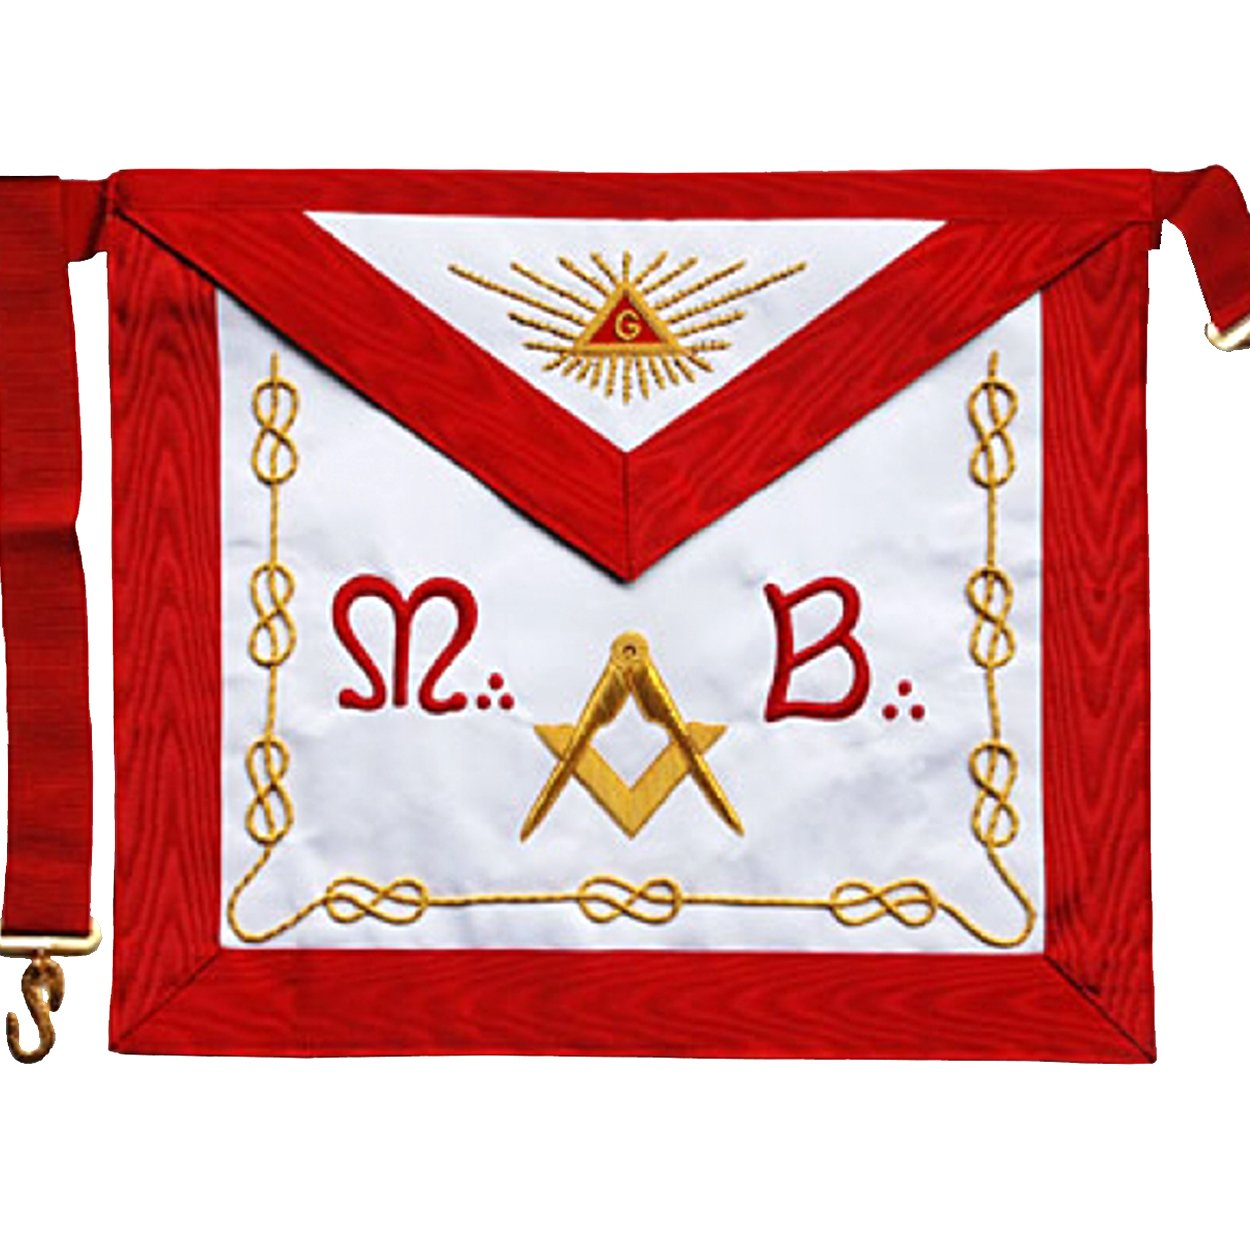 "Masonic Scottish Rite AASR Master Apron ""M+B"" Hand Embroidered Apron - Bricks Masons"